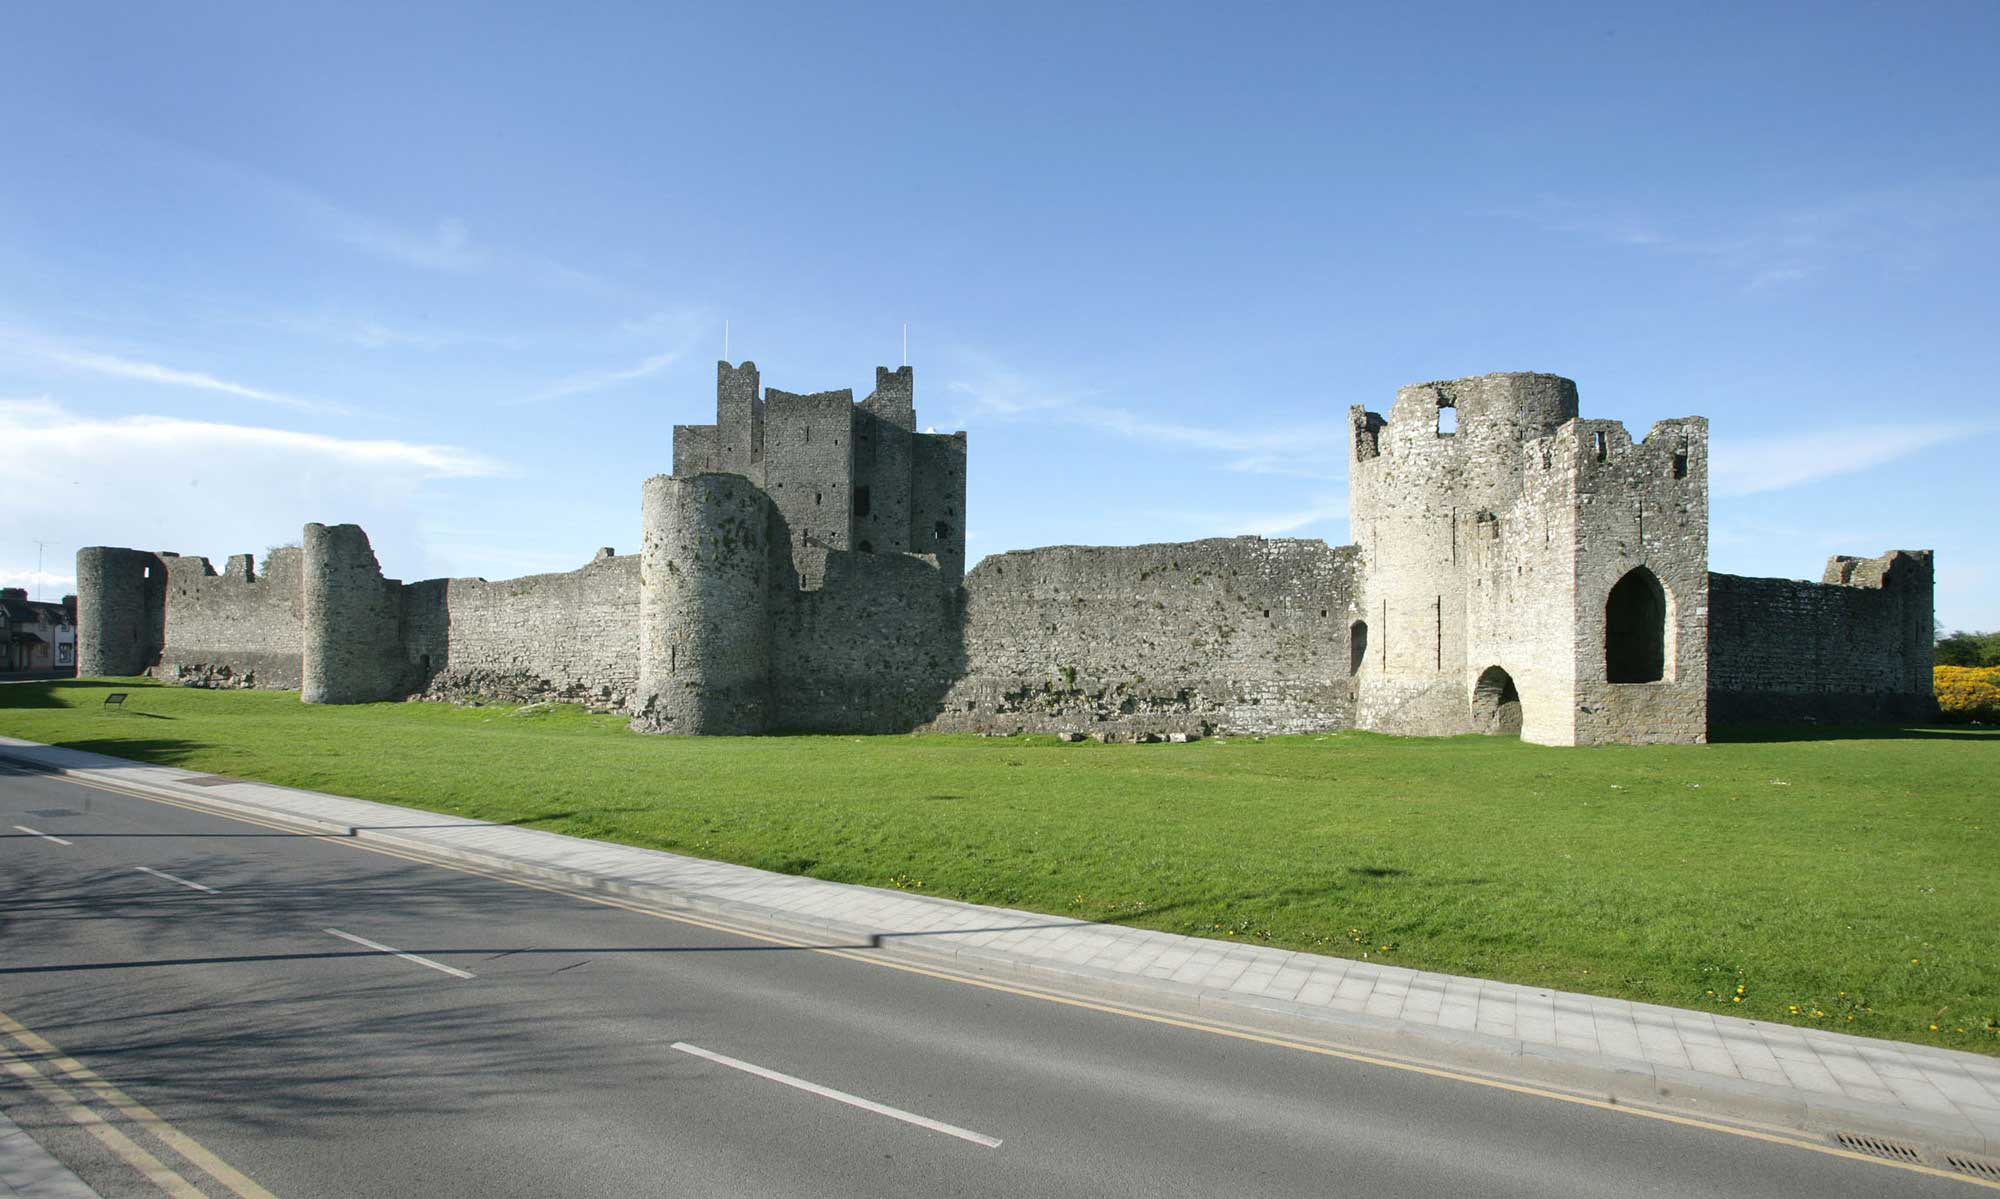 The walls of Trim Castle with the Barbican Gate